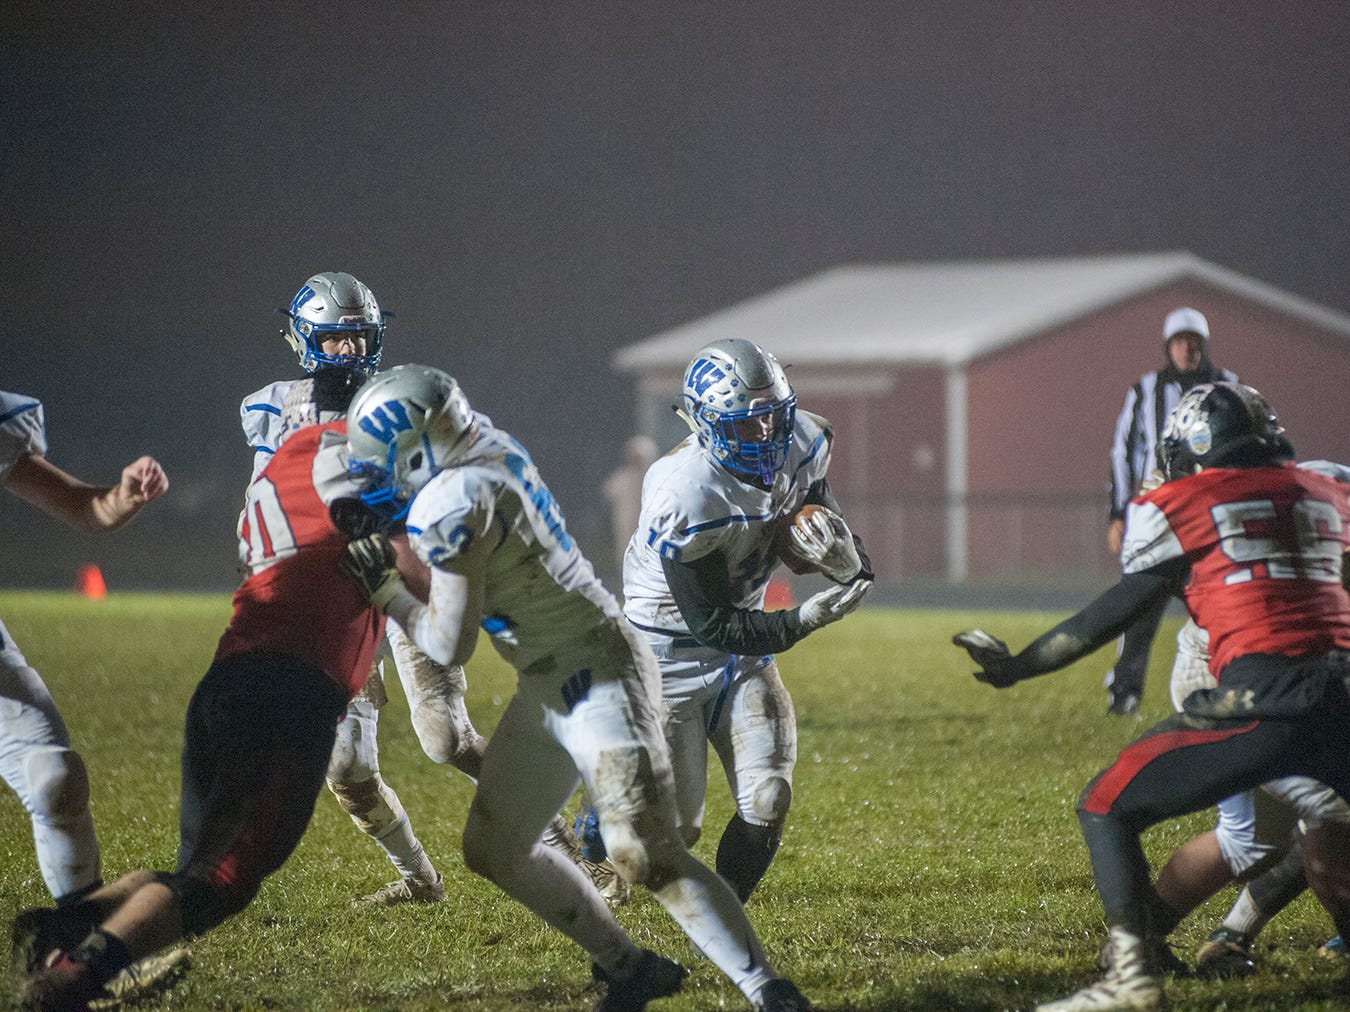 Wynford's Blake Sparks runs through a gap in the Bucyrus defense.